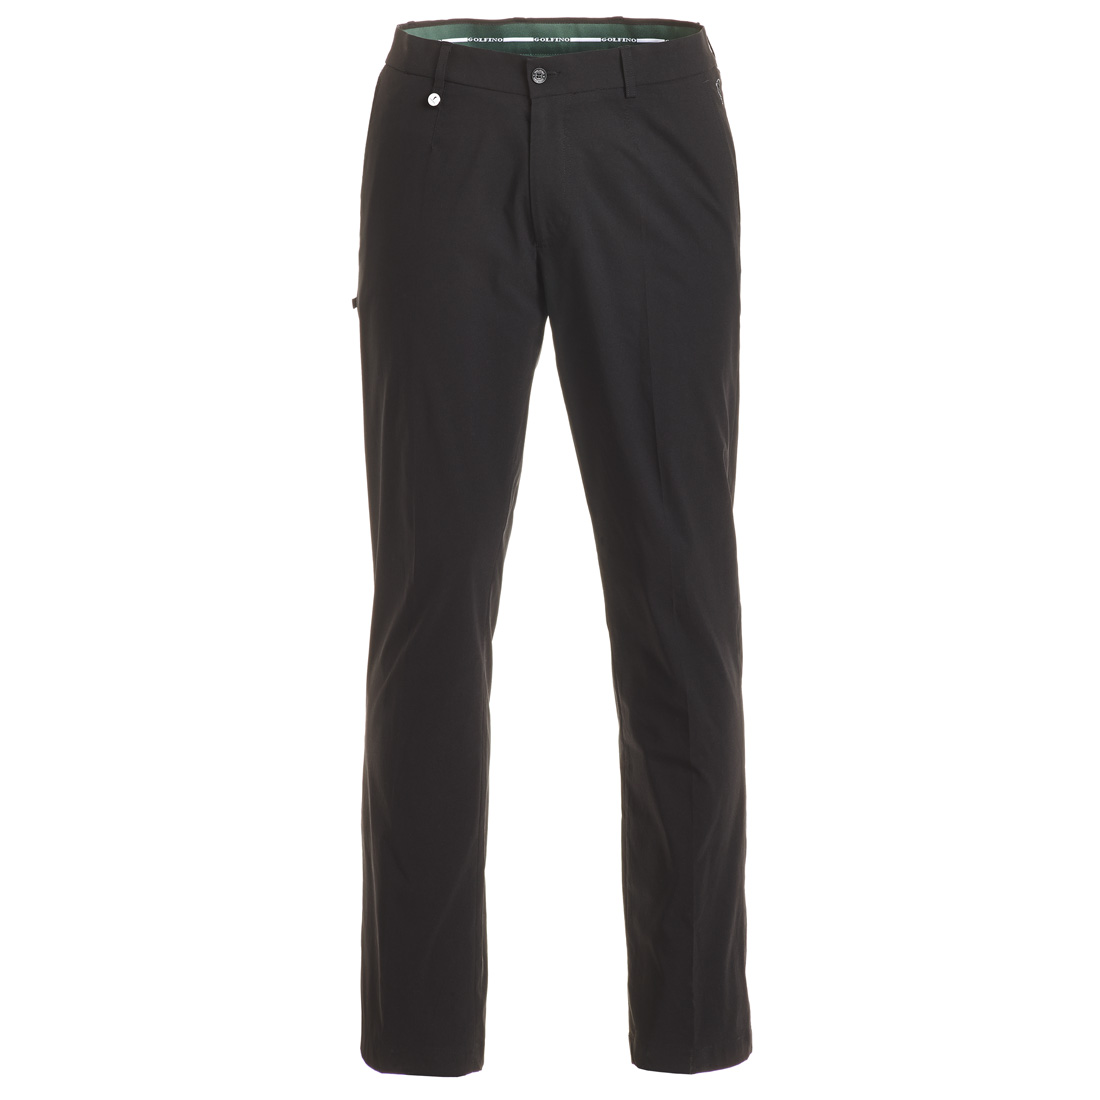 Modern functional golf trousers with moisture management and sun protection in regular fit